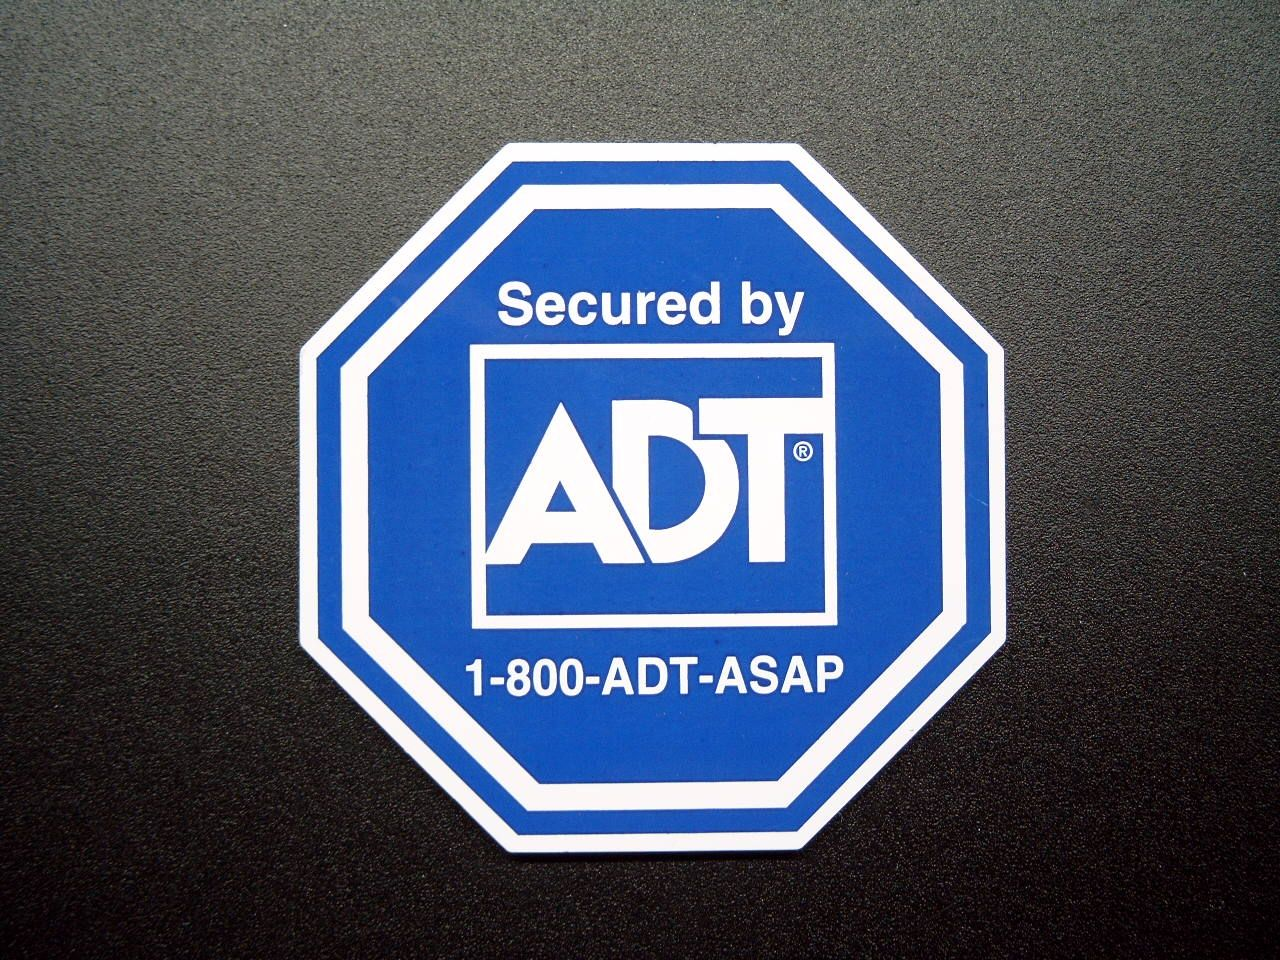 Pin By Sal P On Adt Home Security Adt Security Security